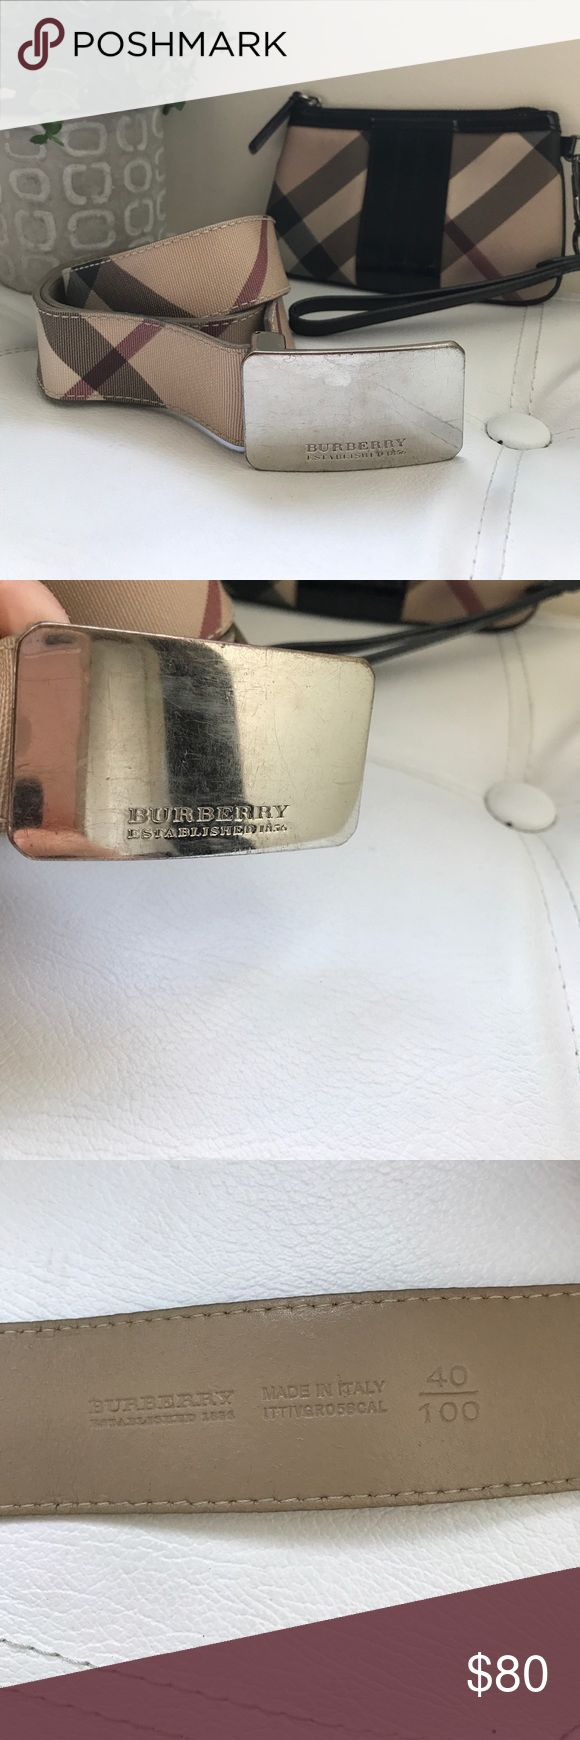 Burberry Classic Nova Check Belt Beautiful all leather belt, has a couple of belt loop holes that are worn, but few scratches, and leather is still in great condition and the belt works well! Wristlet is sold separately, but if added to bundle, take an extra 5% off! Fits a 25-28 waist. Measures 37 inches long from under belt buckle. Burberry Accessories Belts